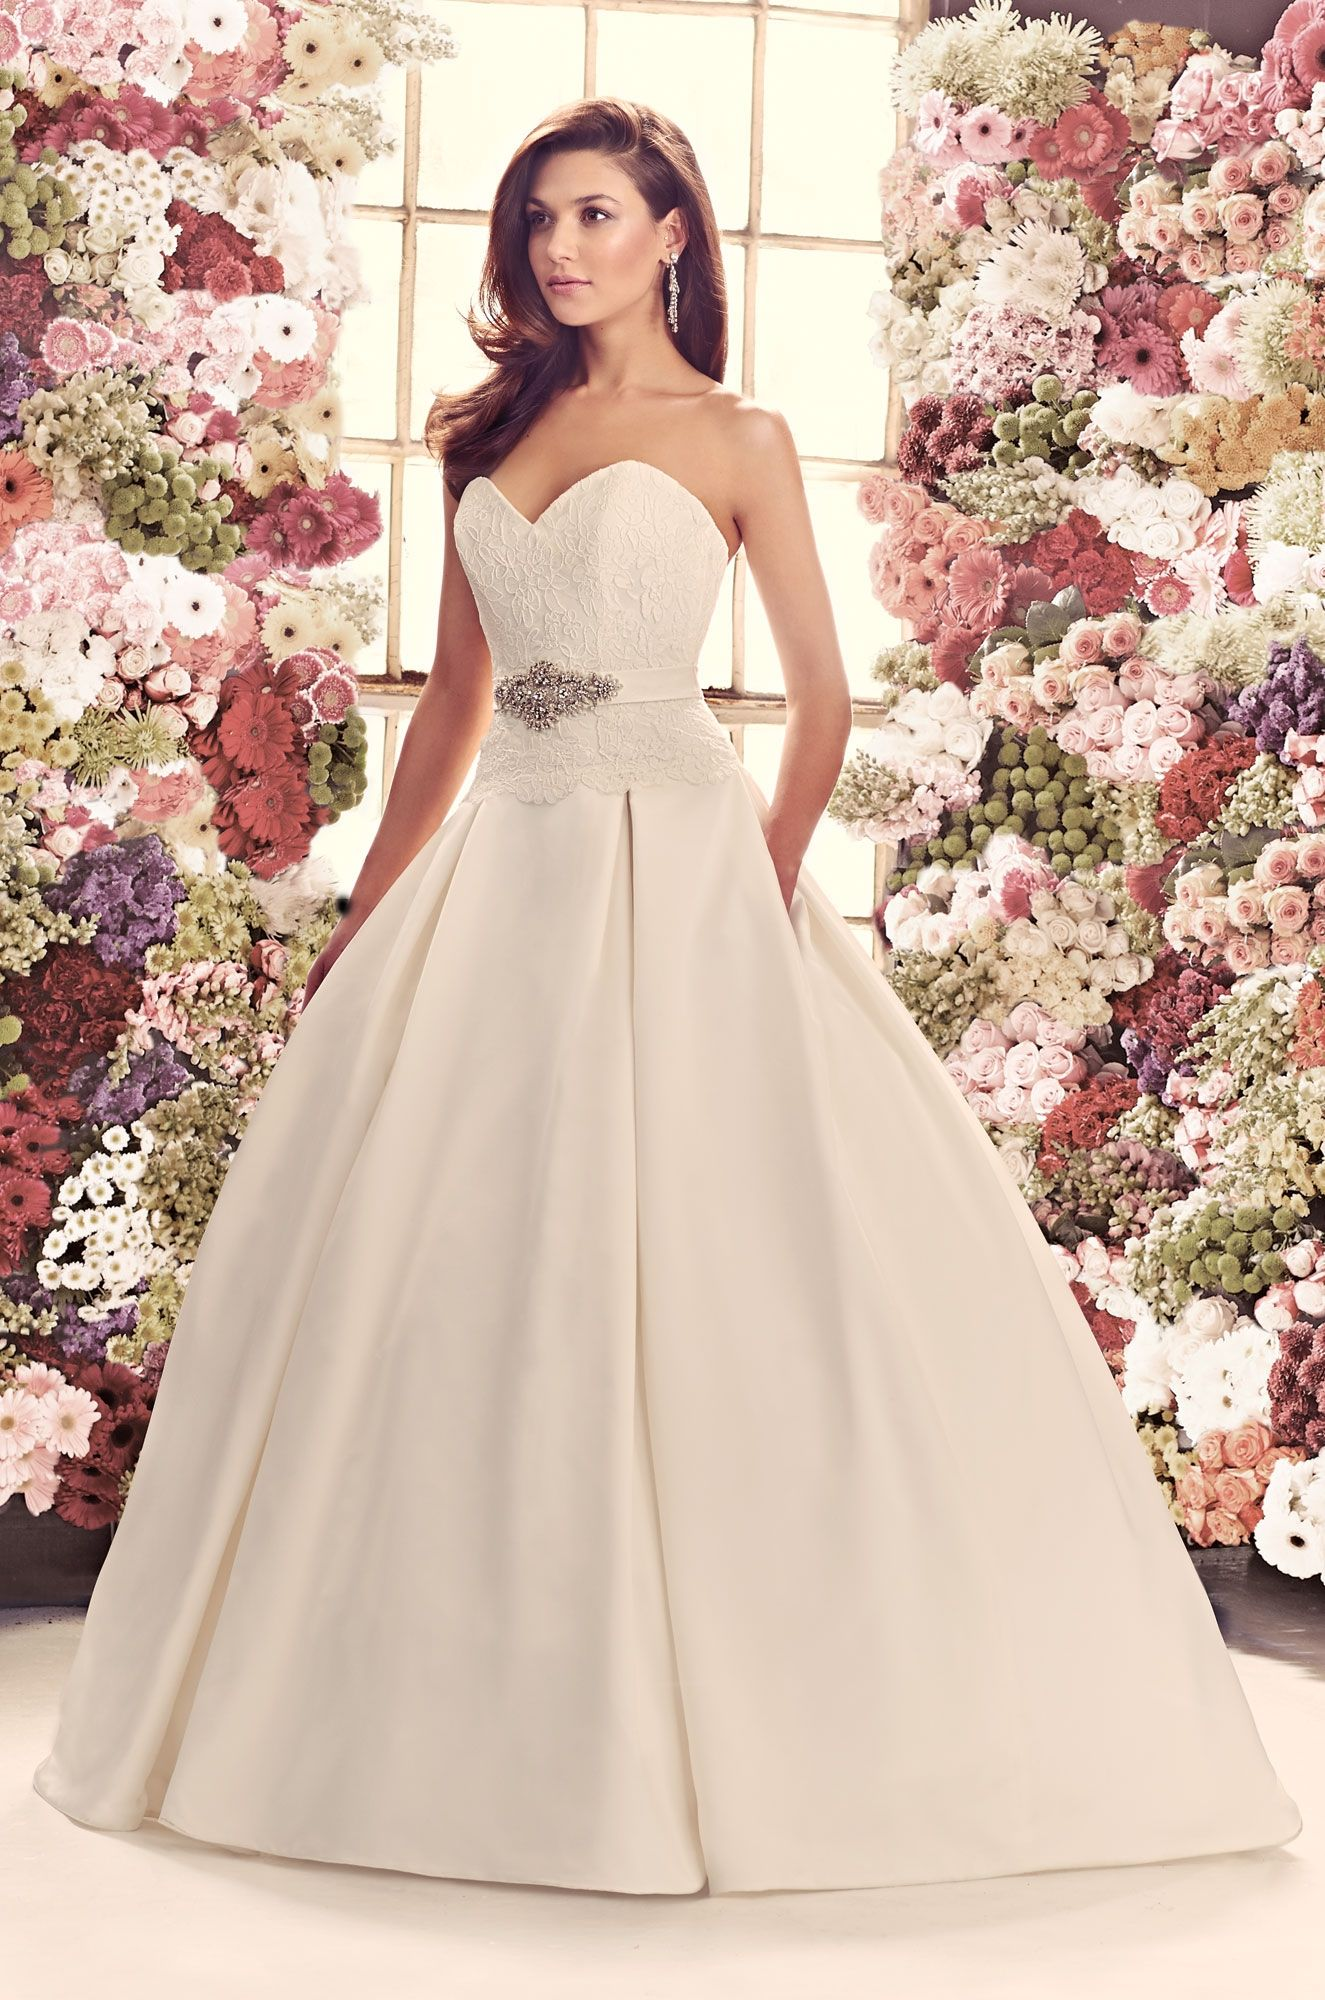 Gown 1916 2014 Fall Collection Mikaella Bridal